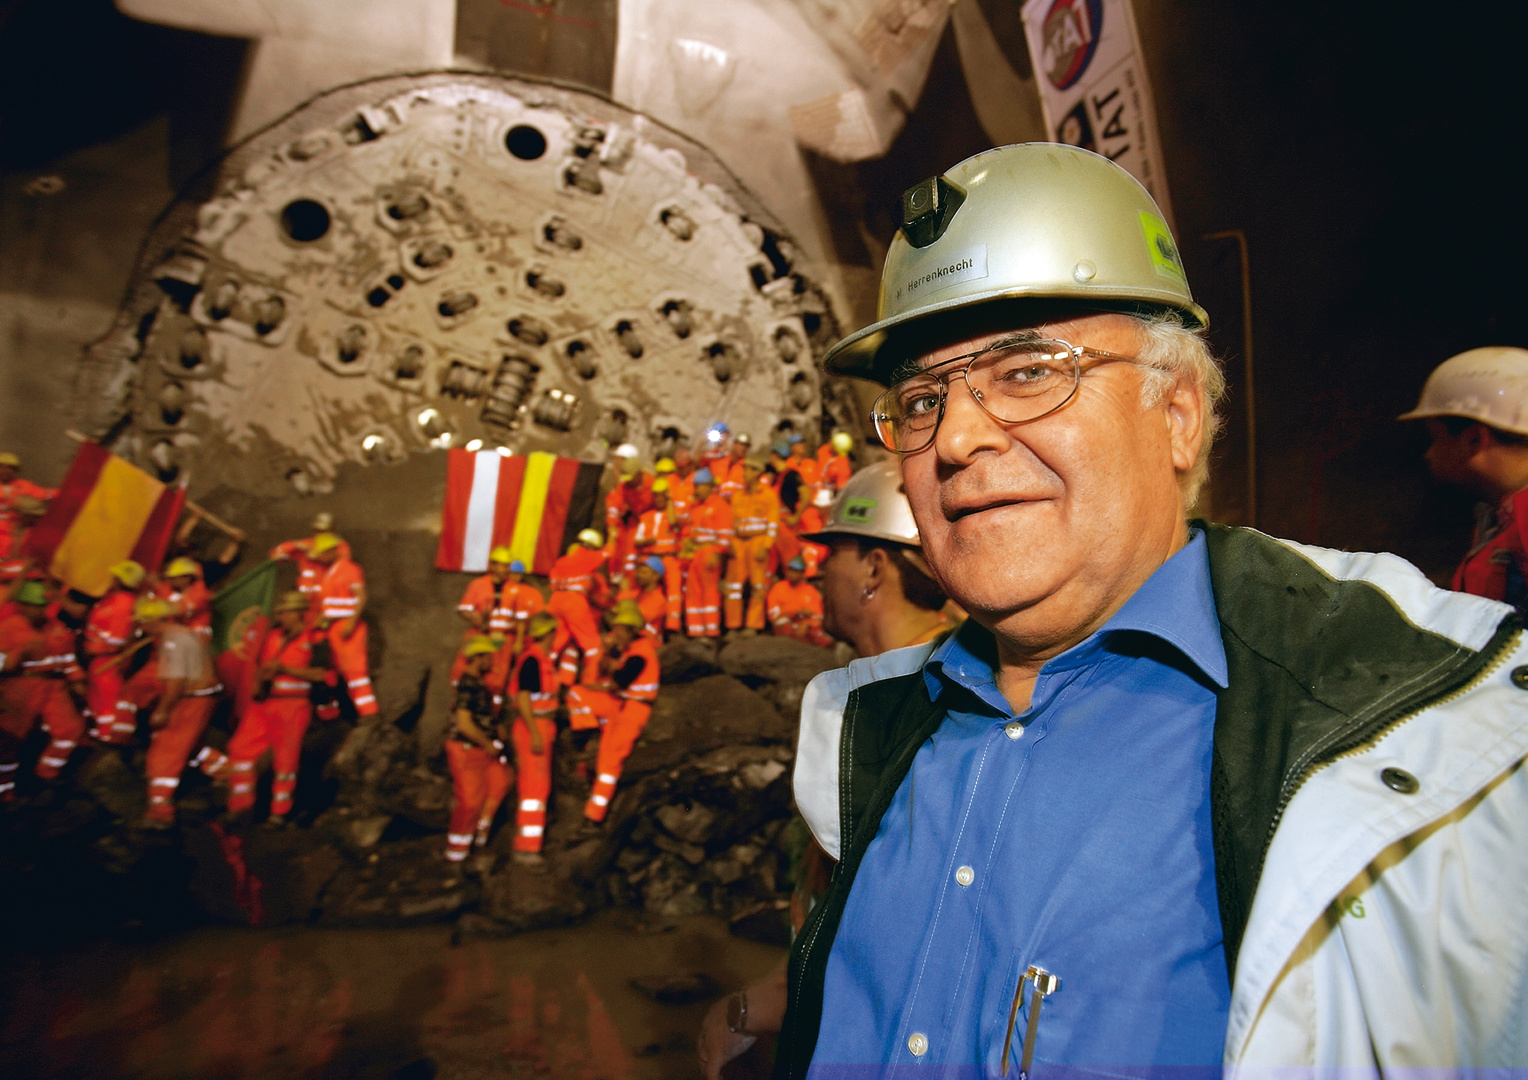 Dr.-Ing. E. h. Martin Herrenknecht at a breakthrough celebration at Gotthard Base Tunnel, Gripper TBM, Ø 8,830 mm, October 26, 2006